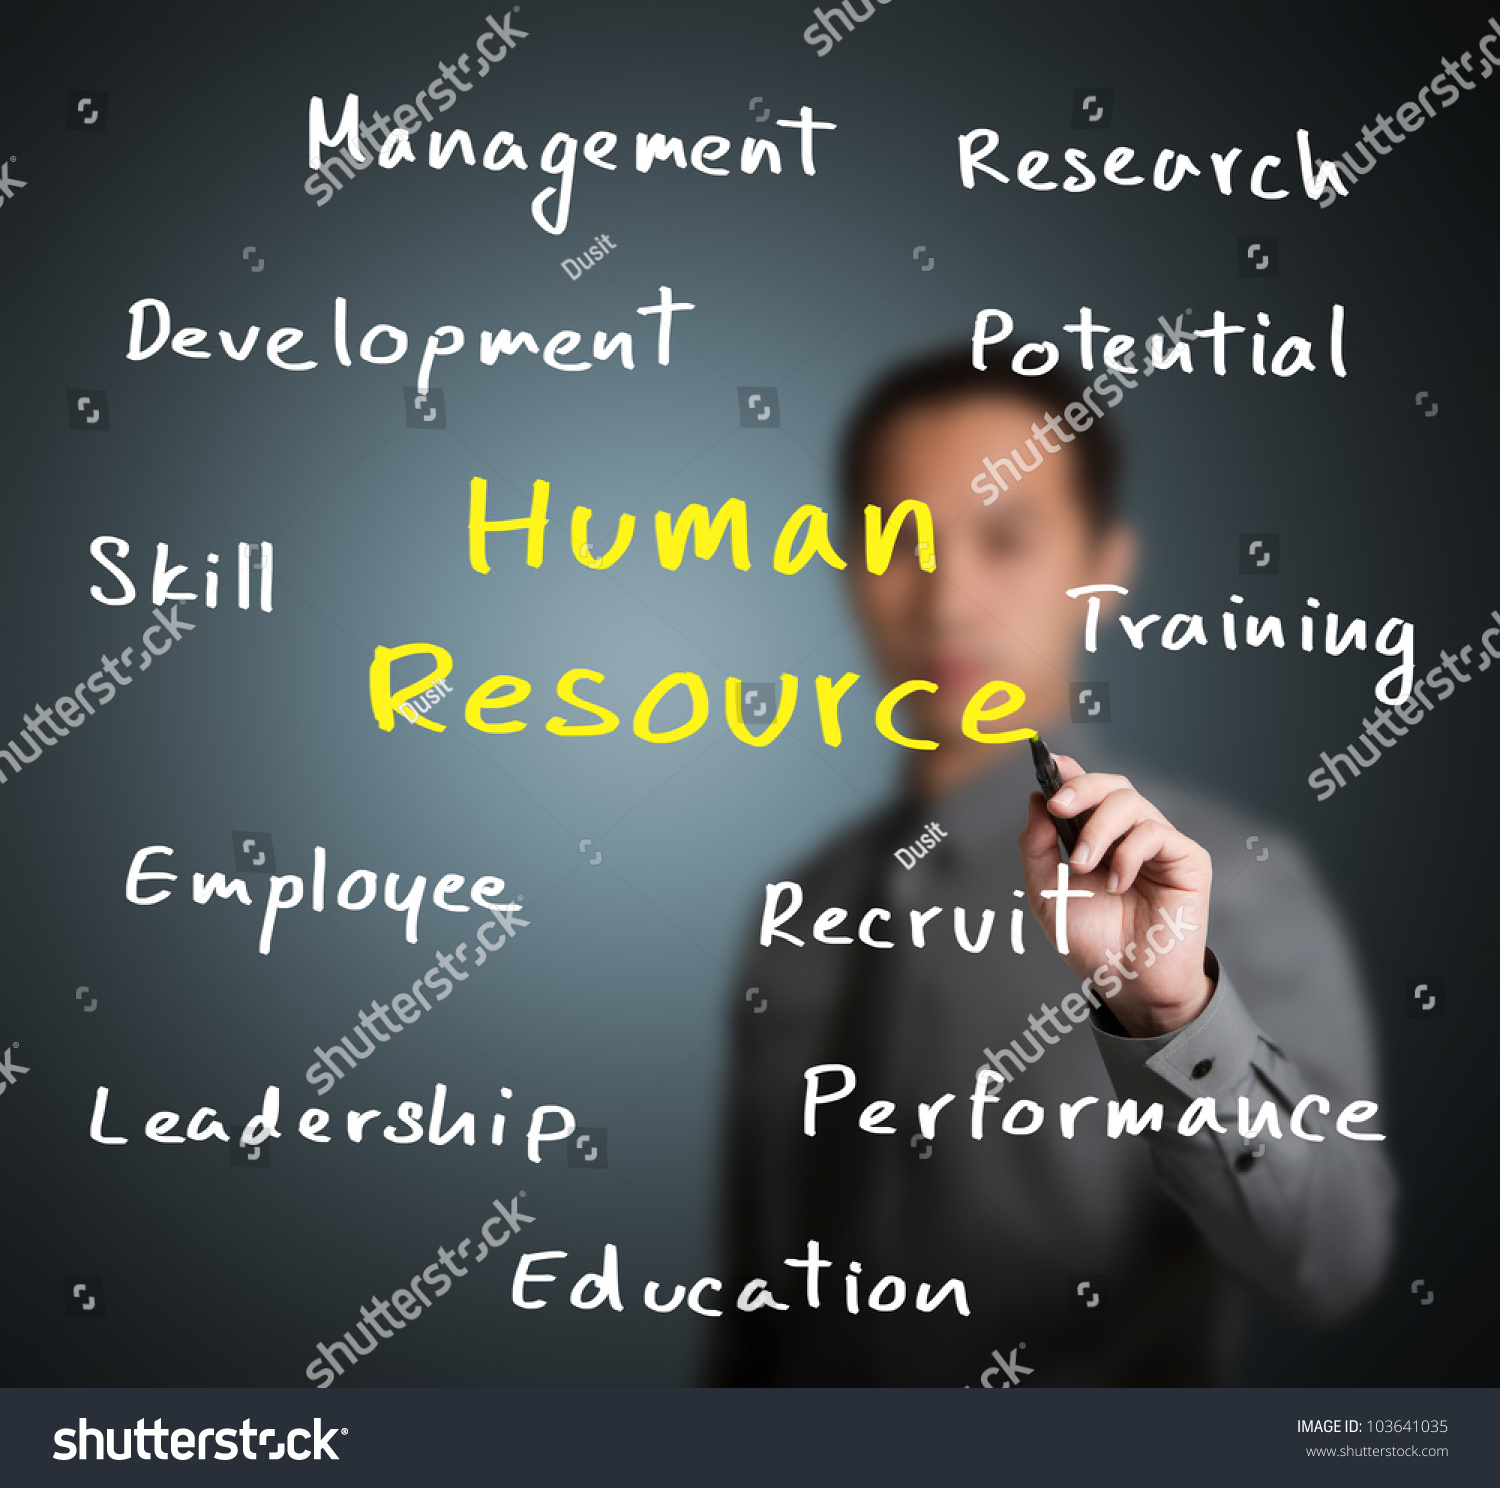 human resource managements distinctive employment approach commerce essay Unit of study descriptions - management  relations and human resource management to examine the  and problem-based learning approach.